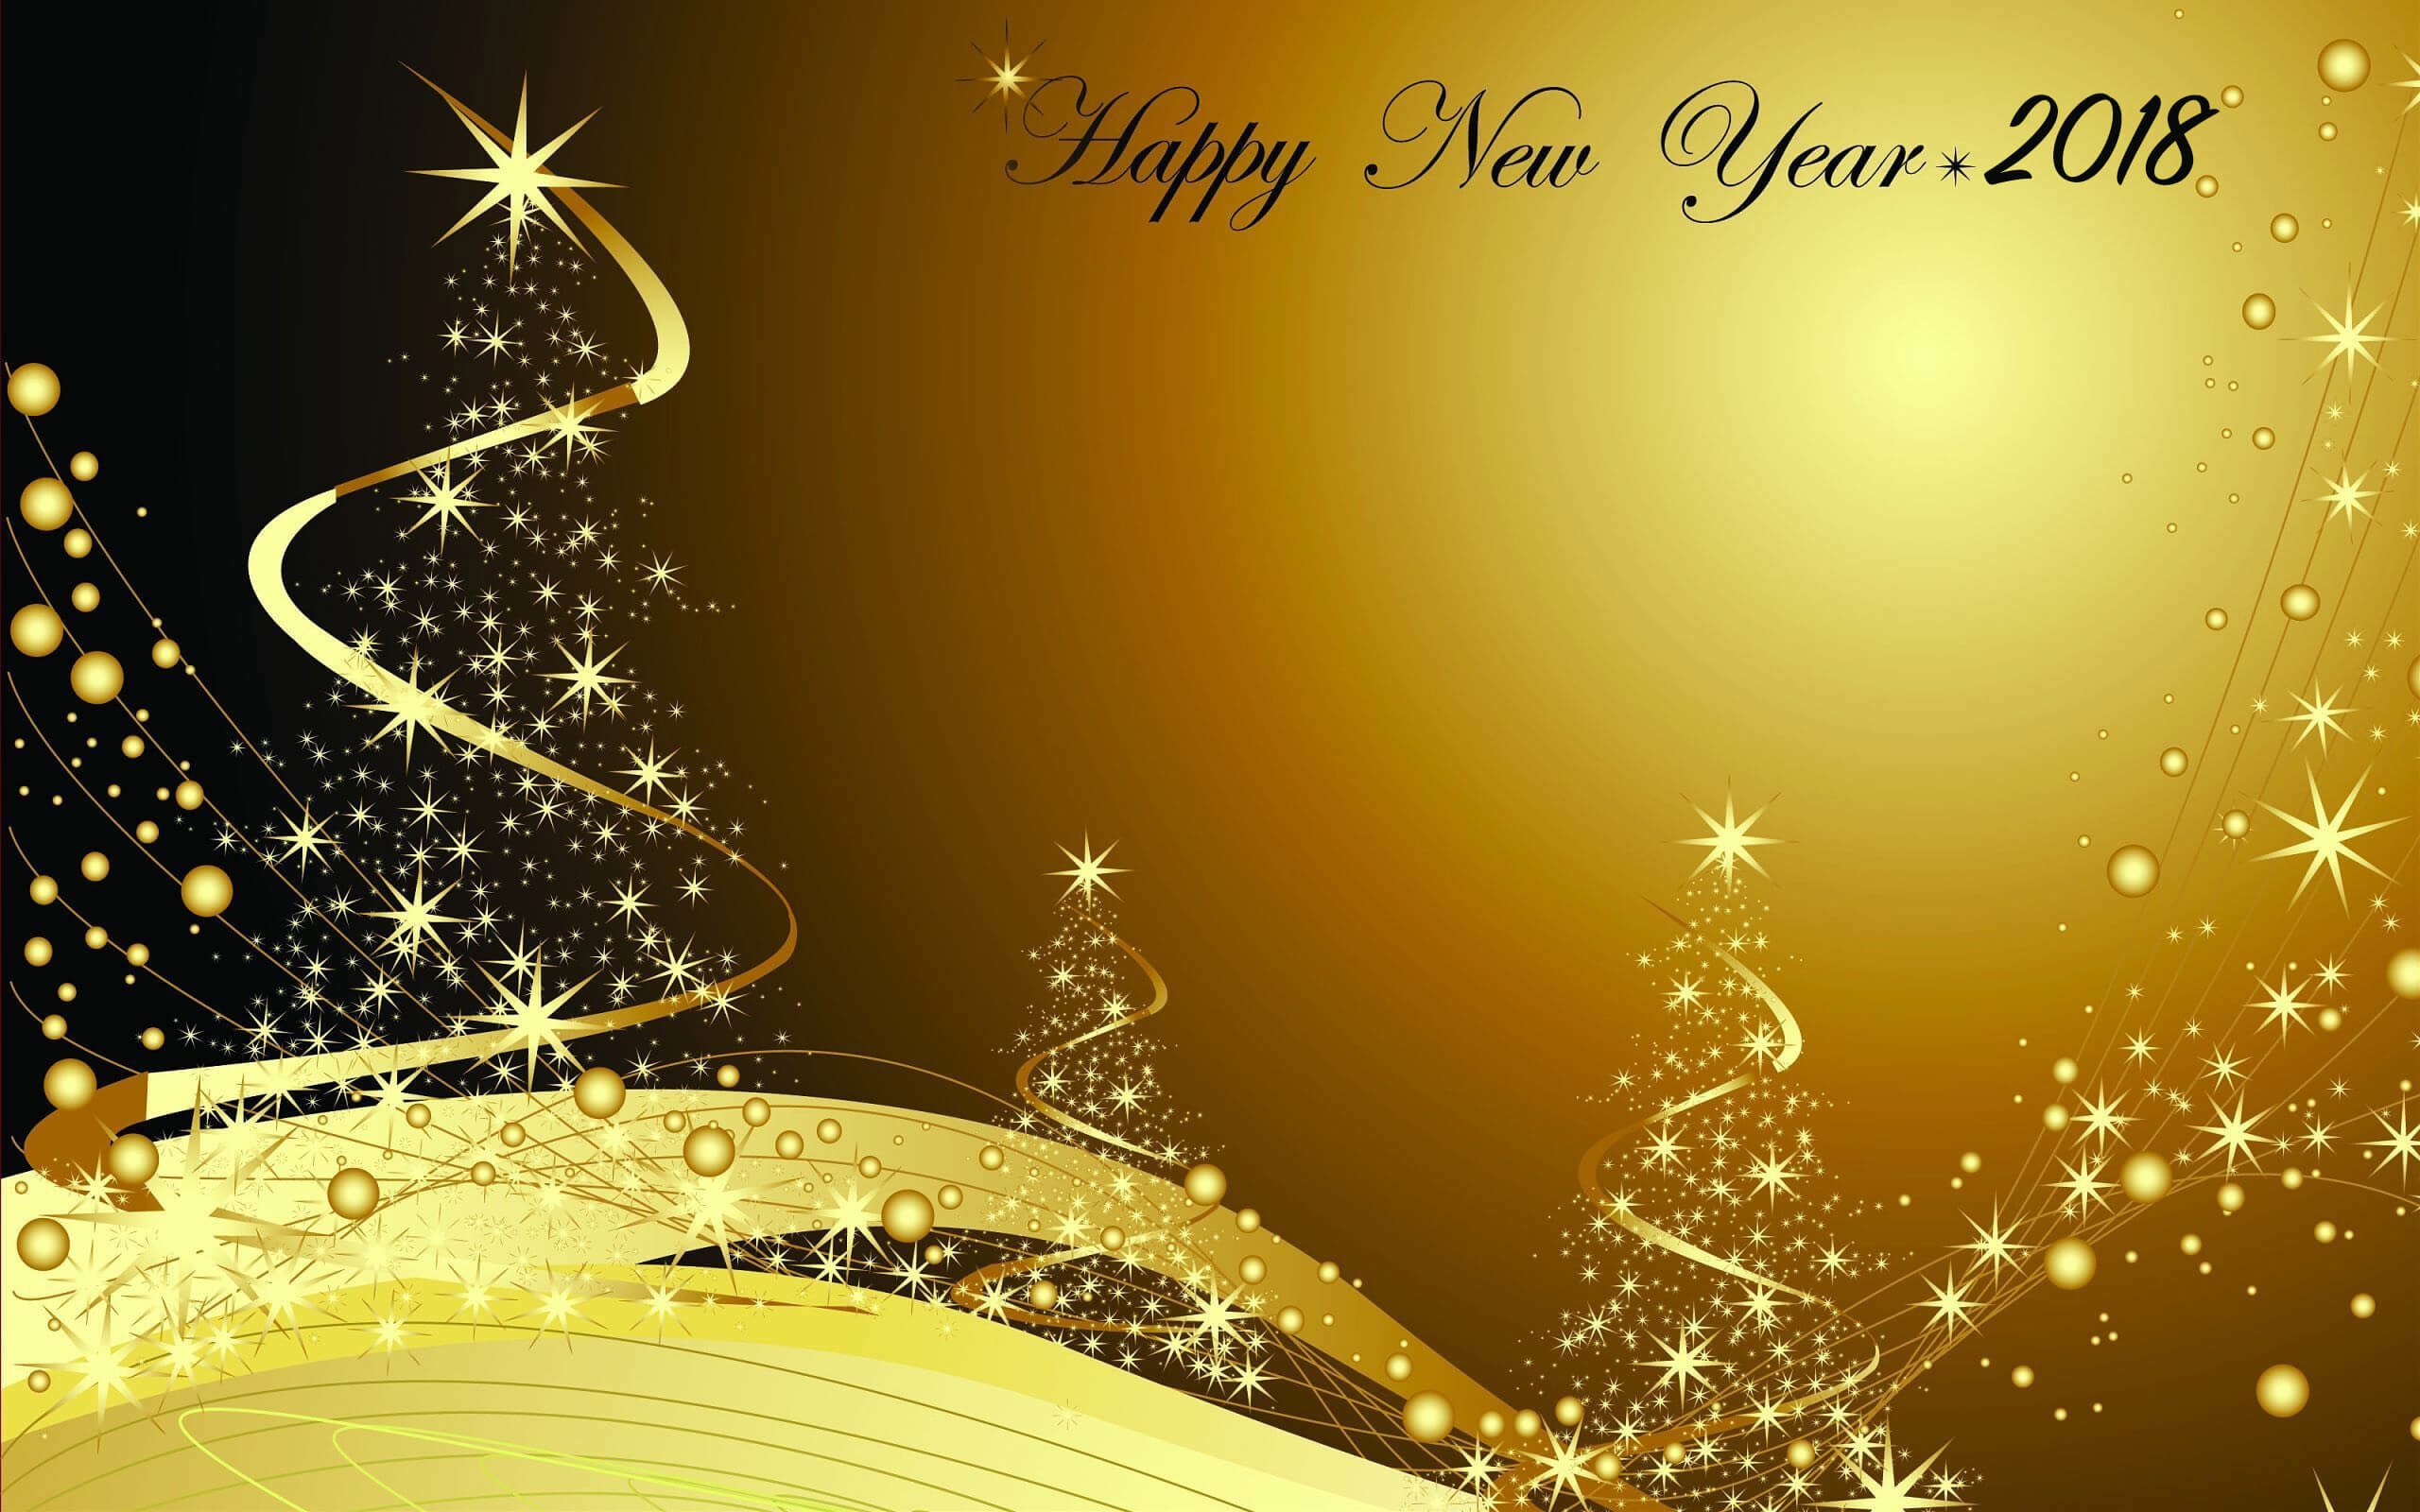 New Year Greetings Wallpapers 2018 76 Background Pictures